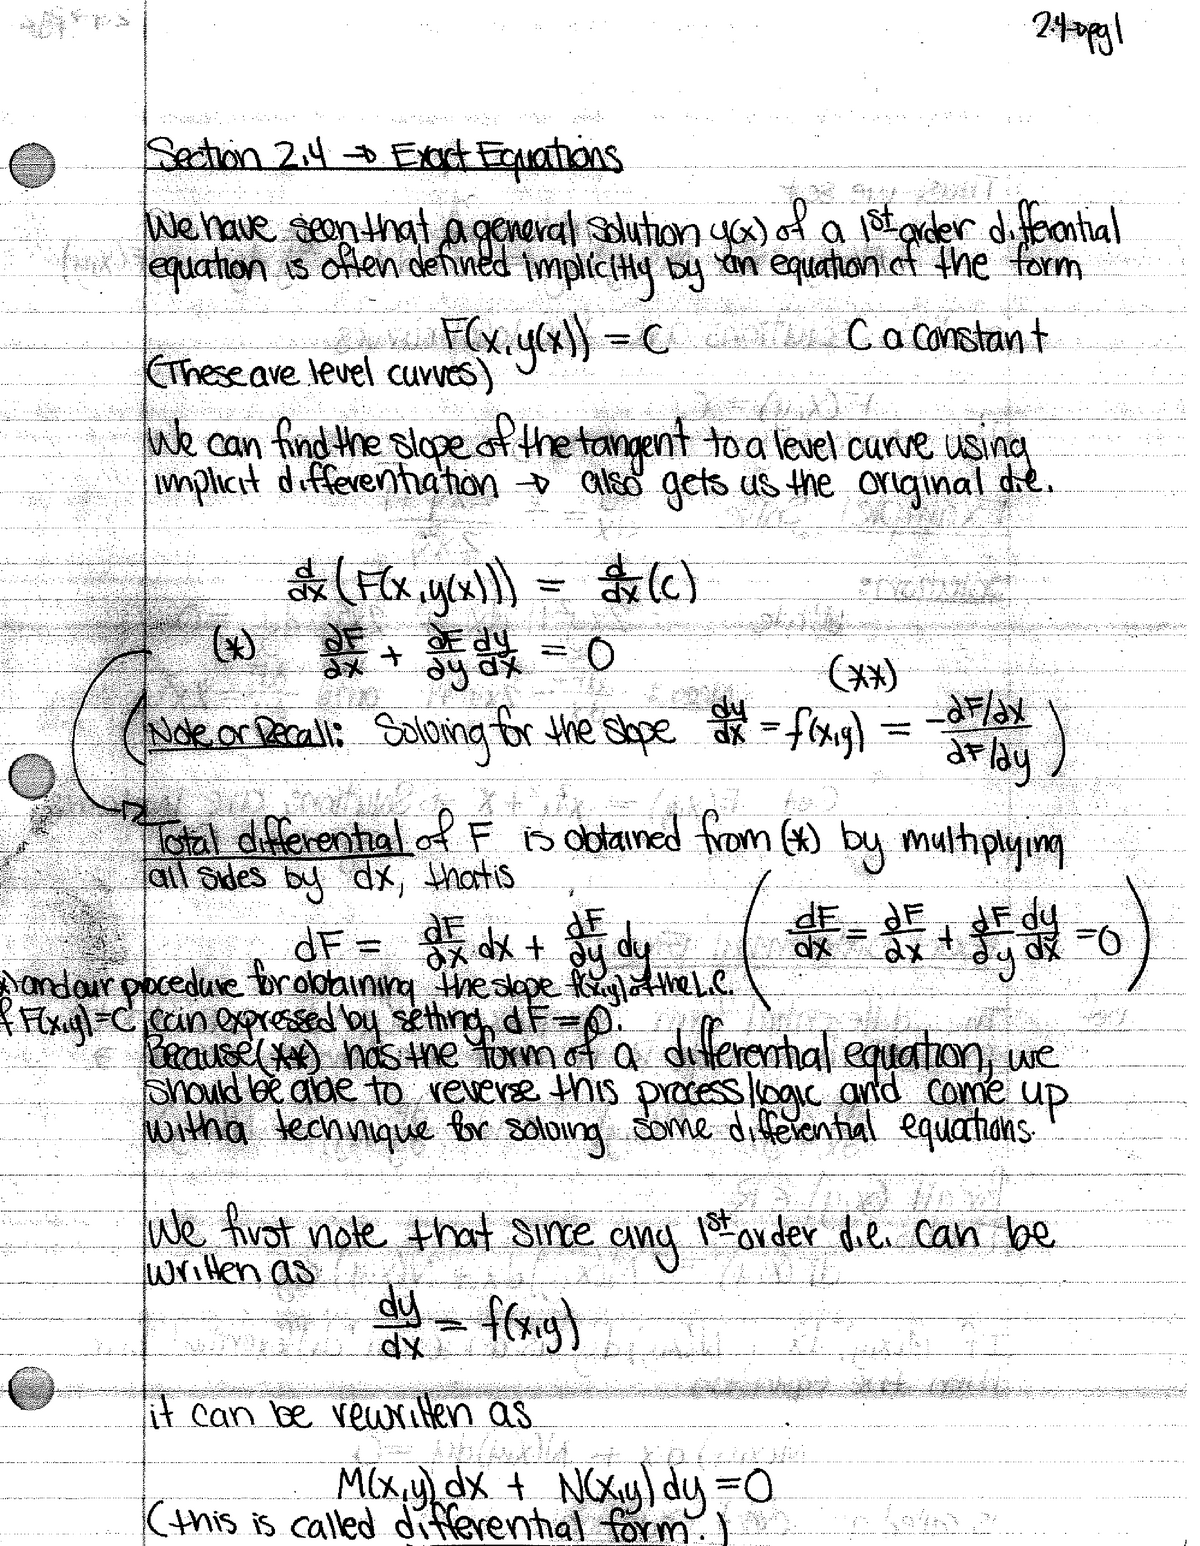 M274 2013-2014 Lecture Notes 7 - Exact Equations - M 274